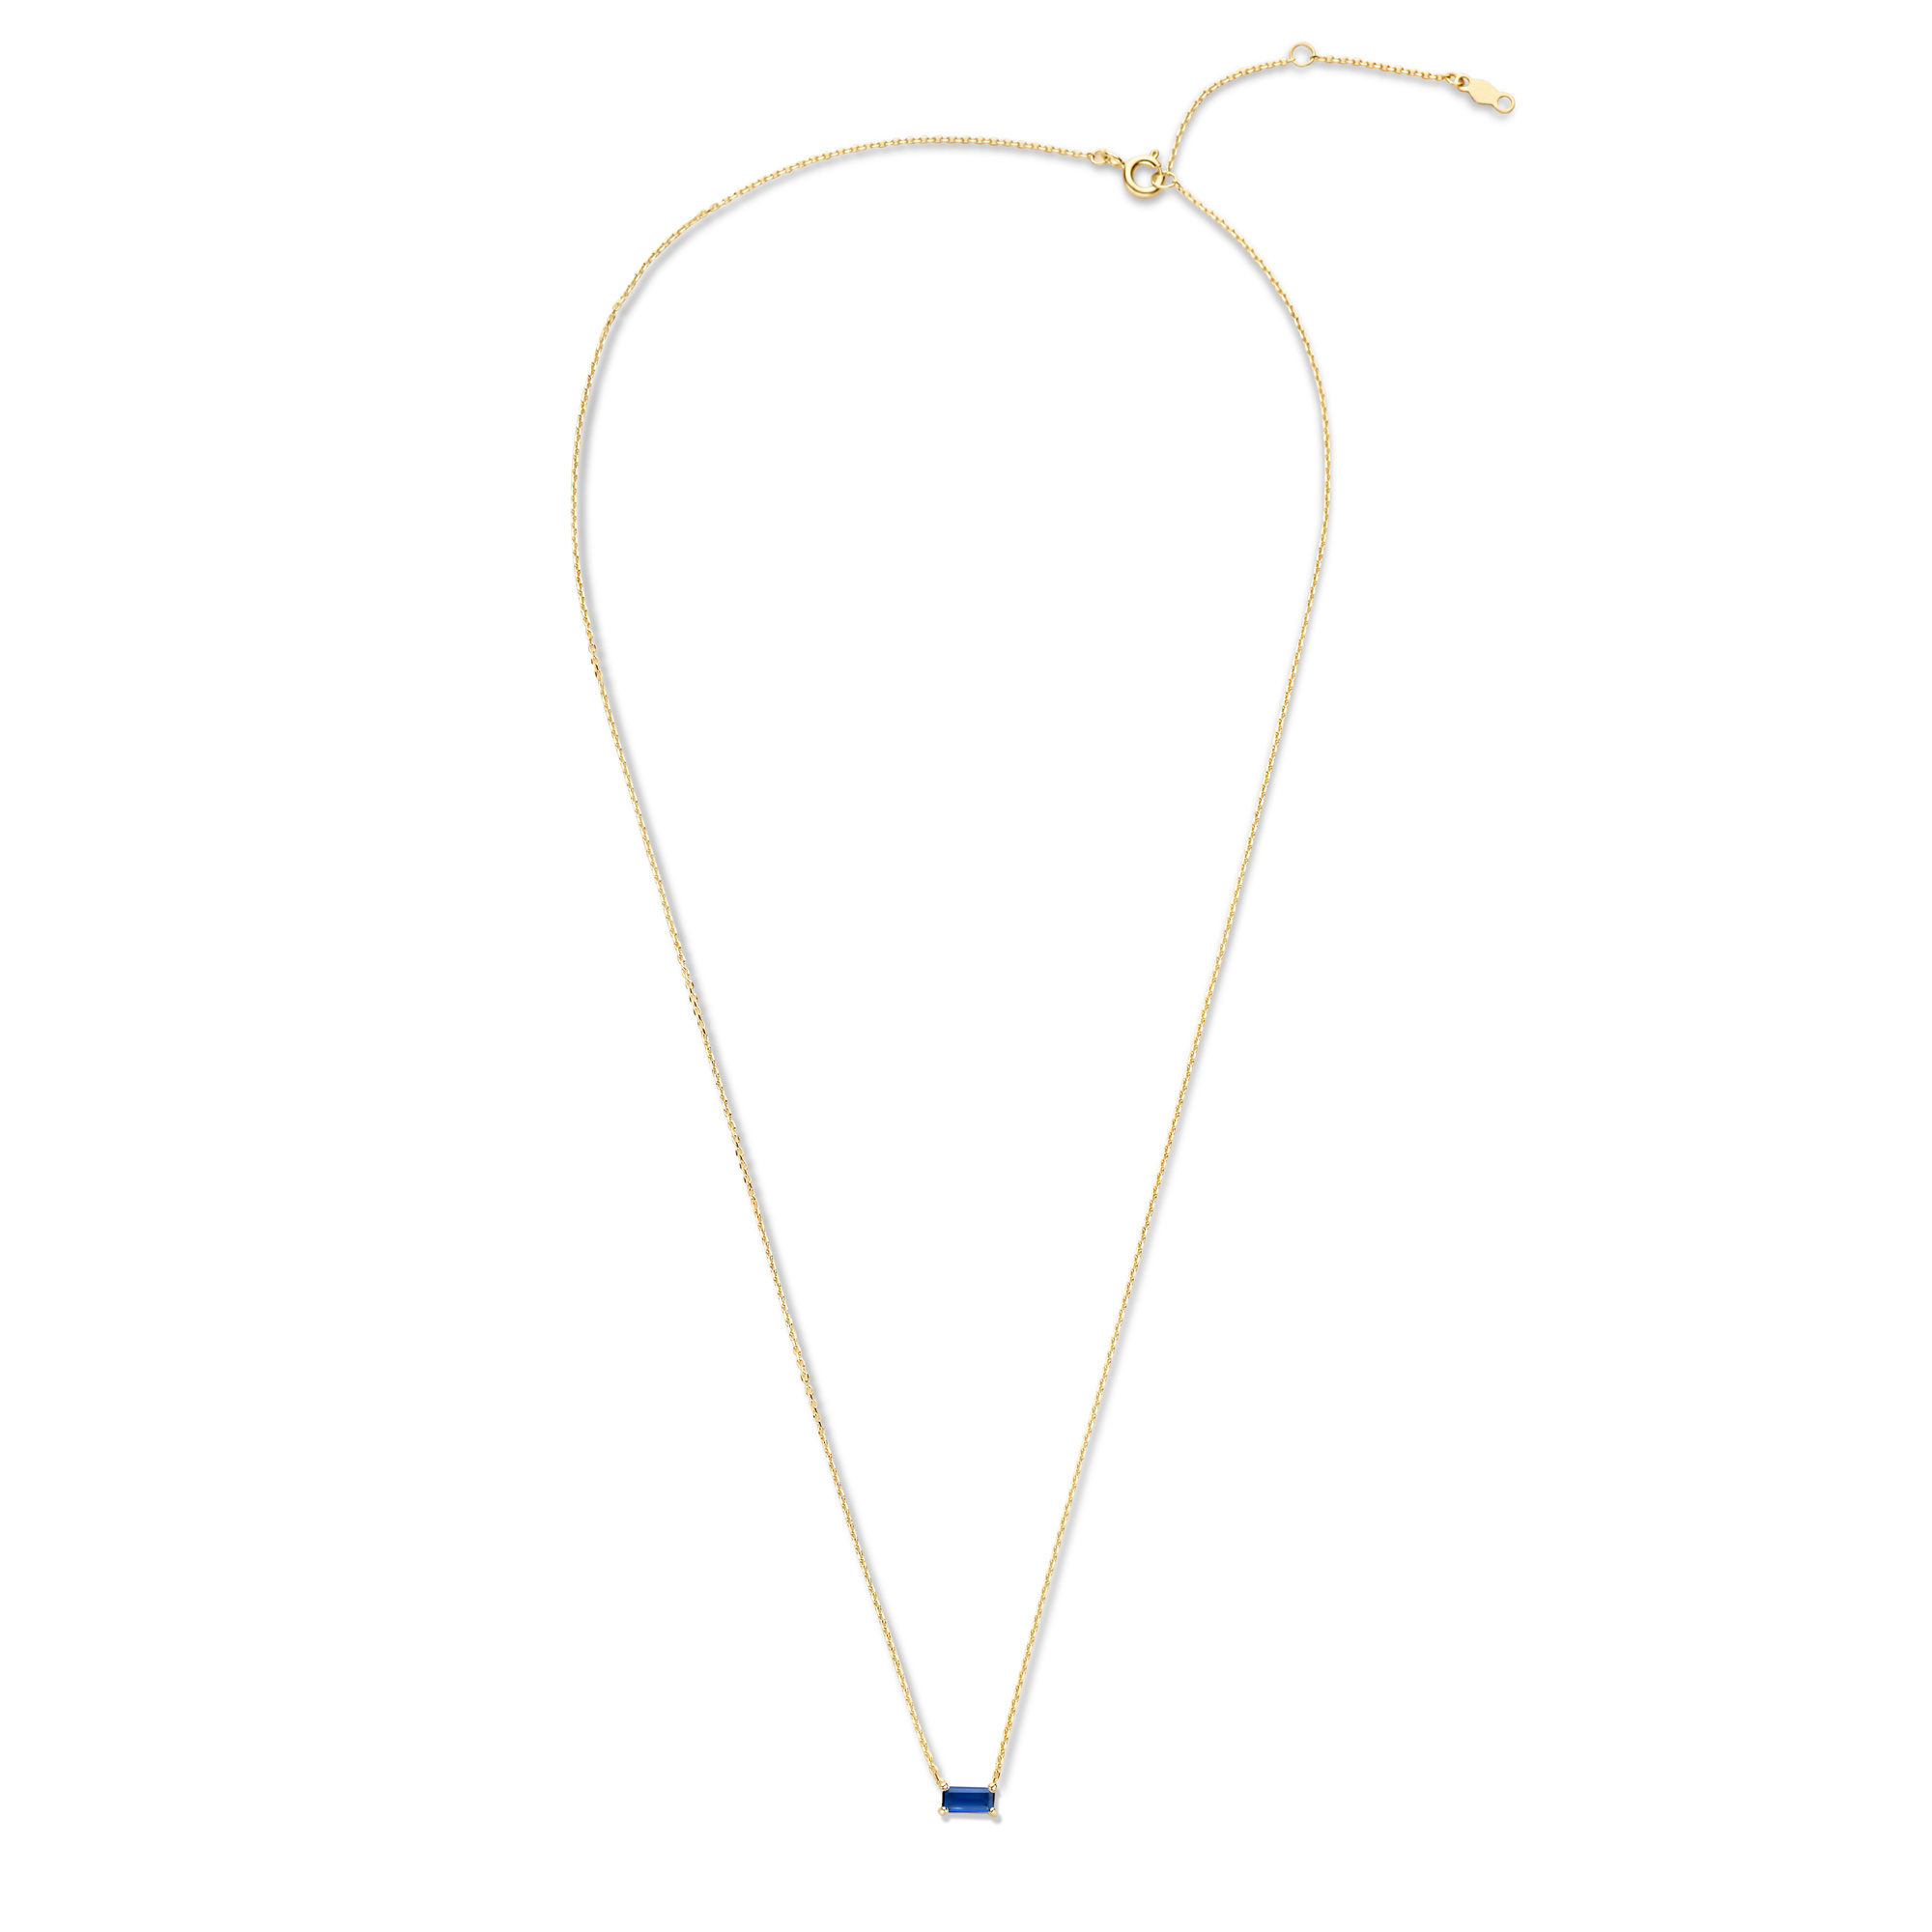 Isabel Bernard Baguette Nanon 14 karat gold necklace